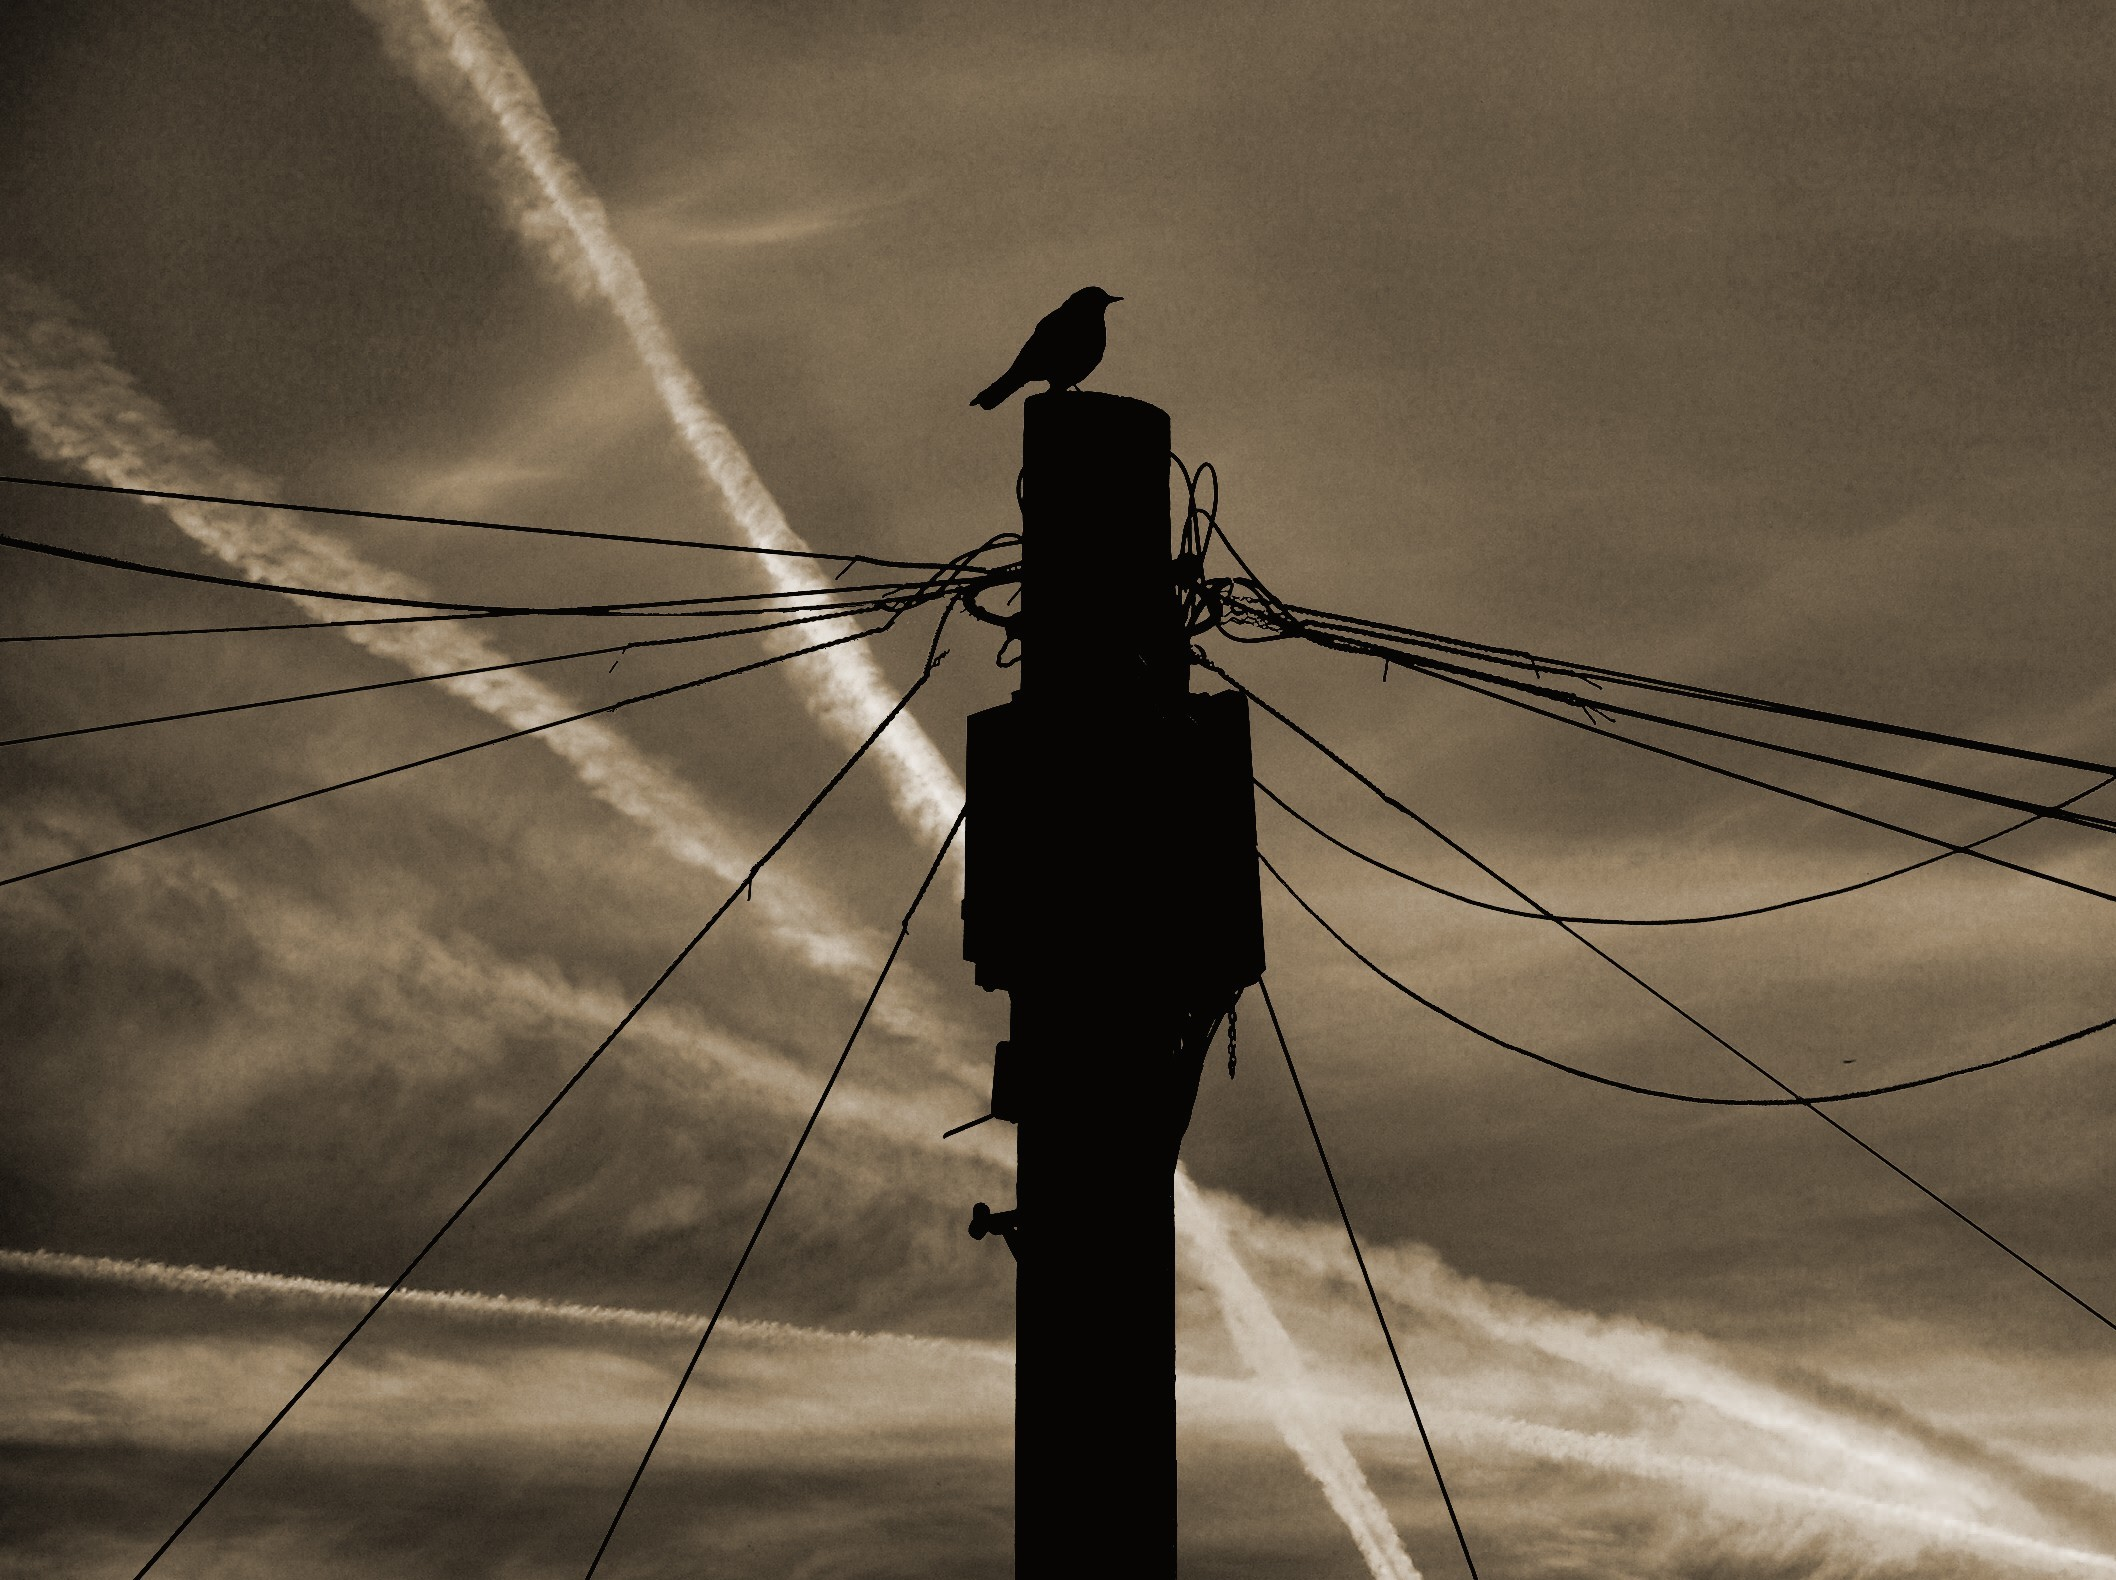 sunset Birds power lines HD Wallpaper